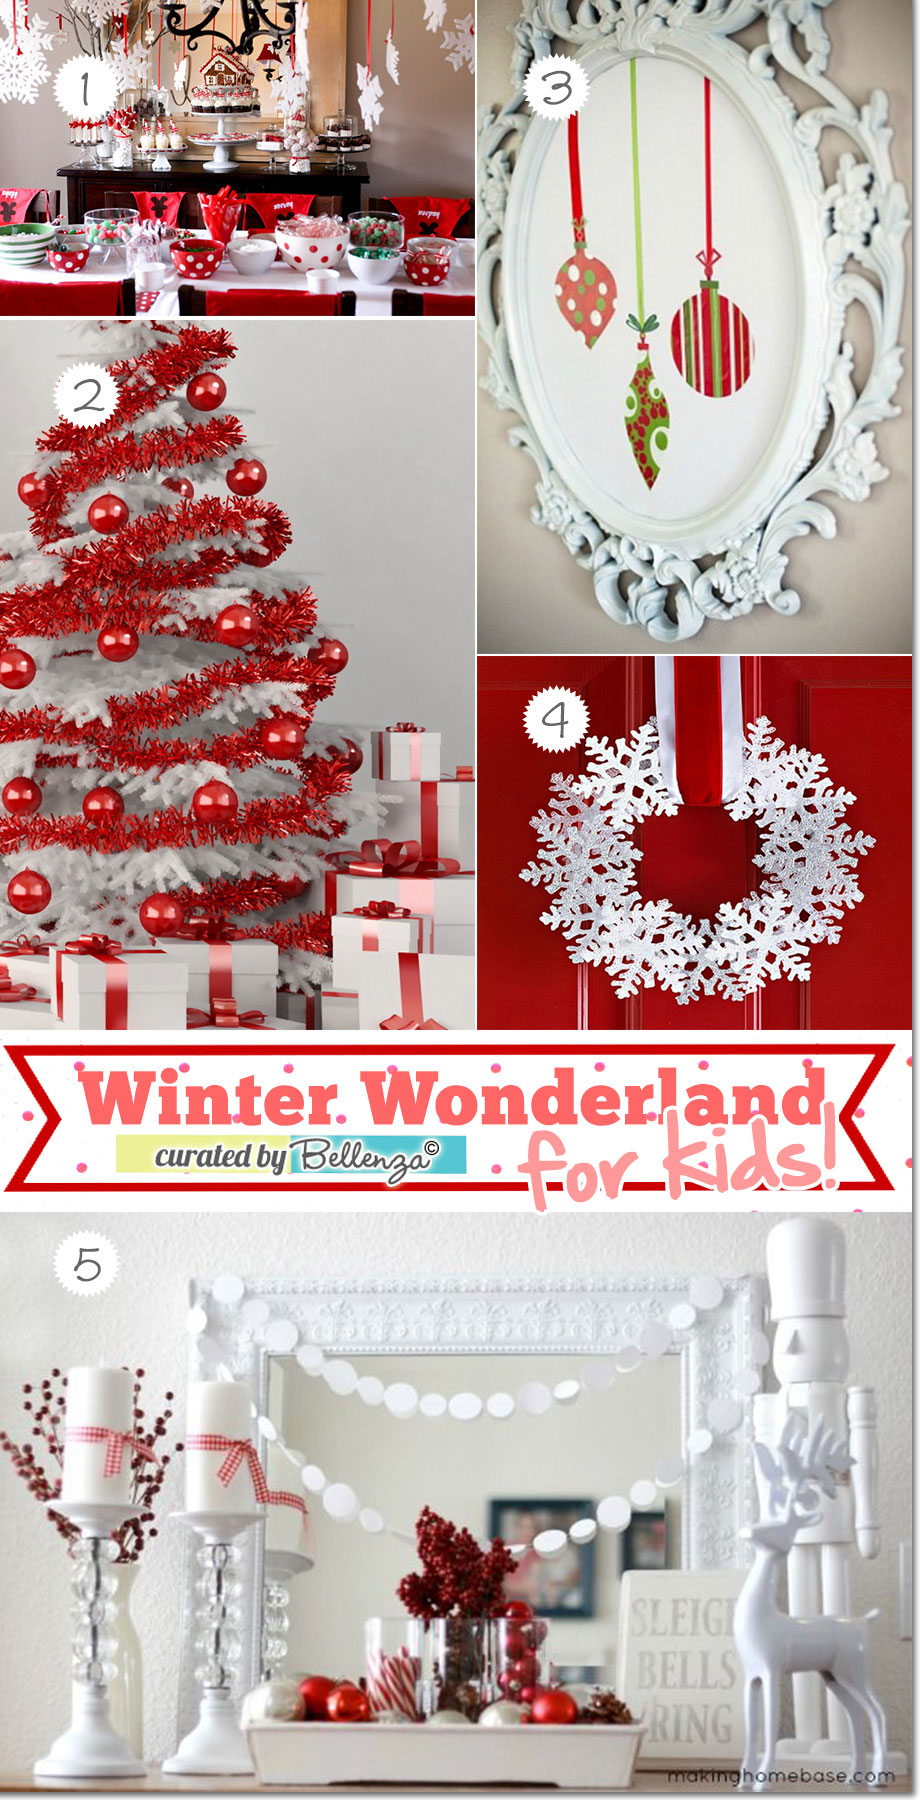 Winter wonderland for kids decorations